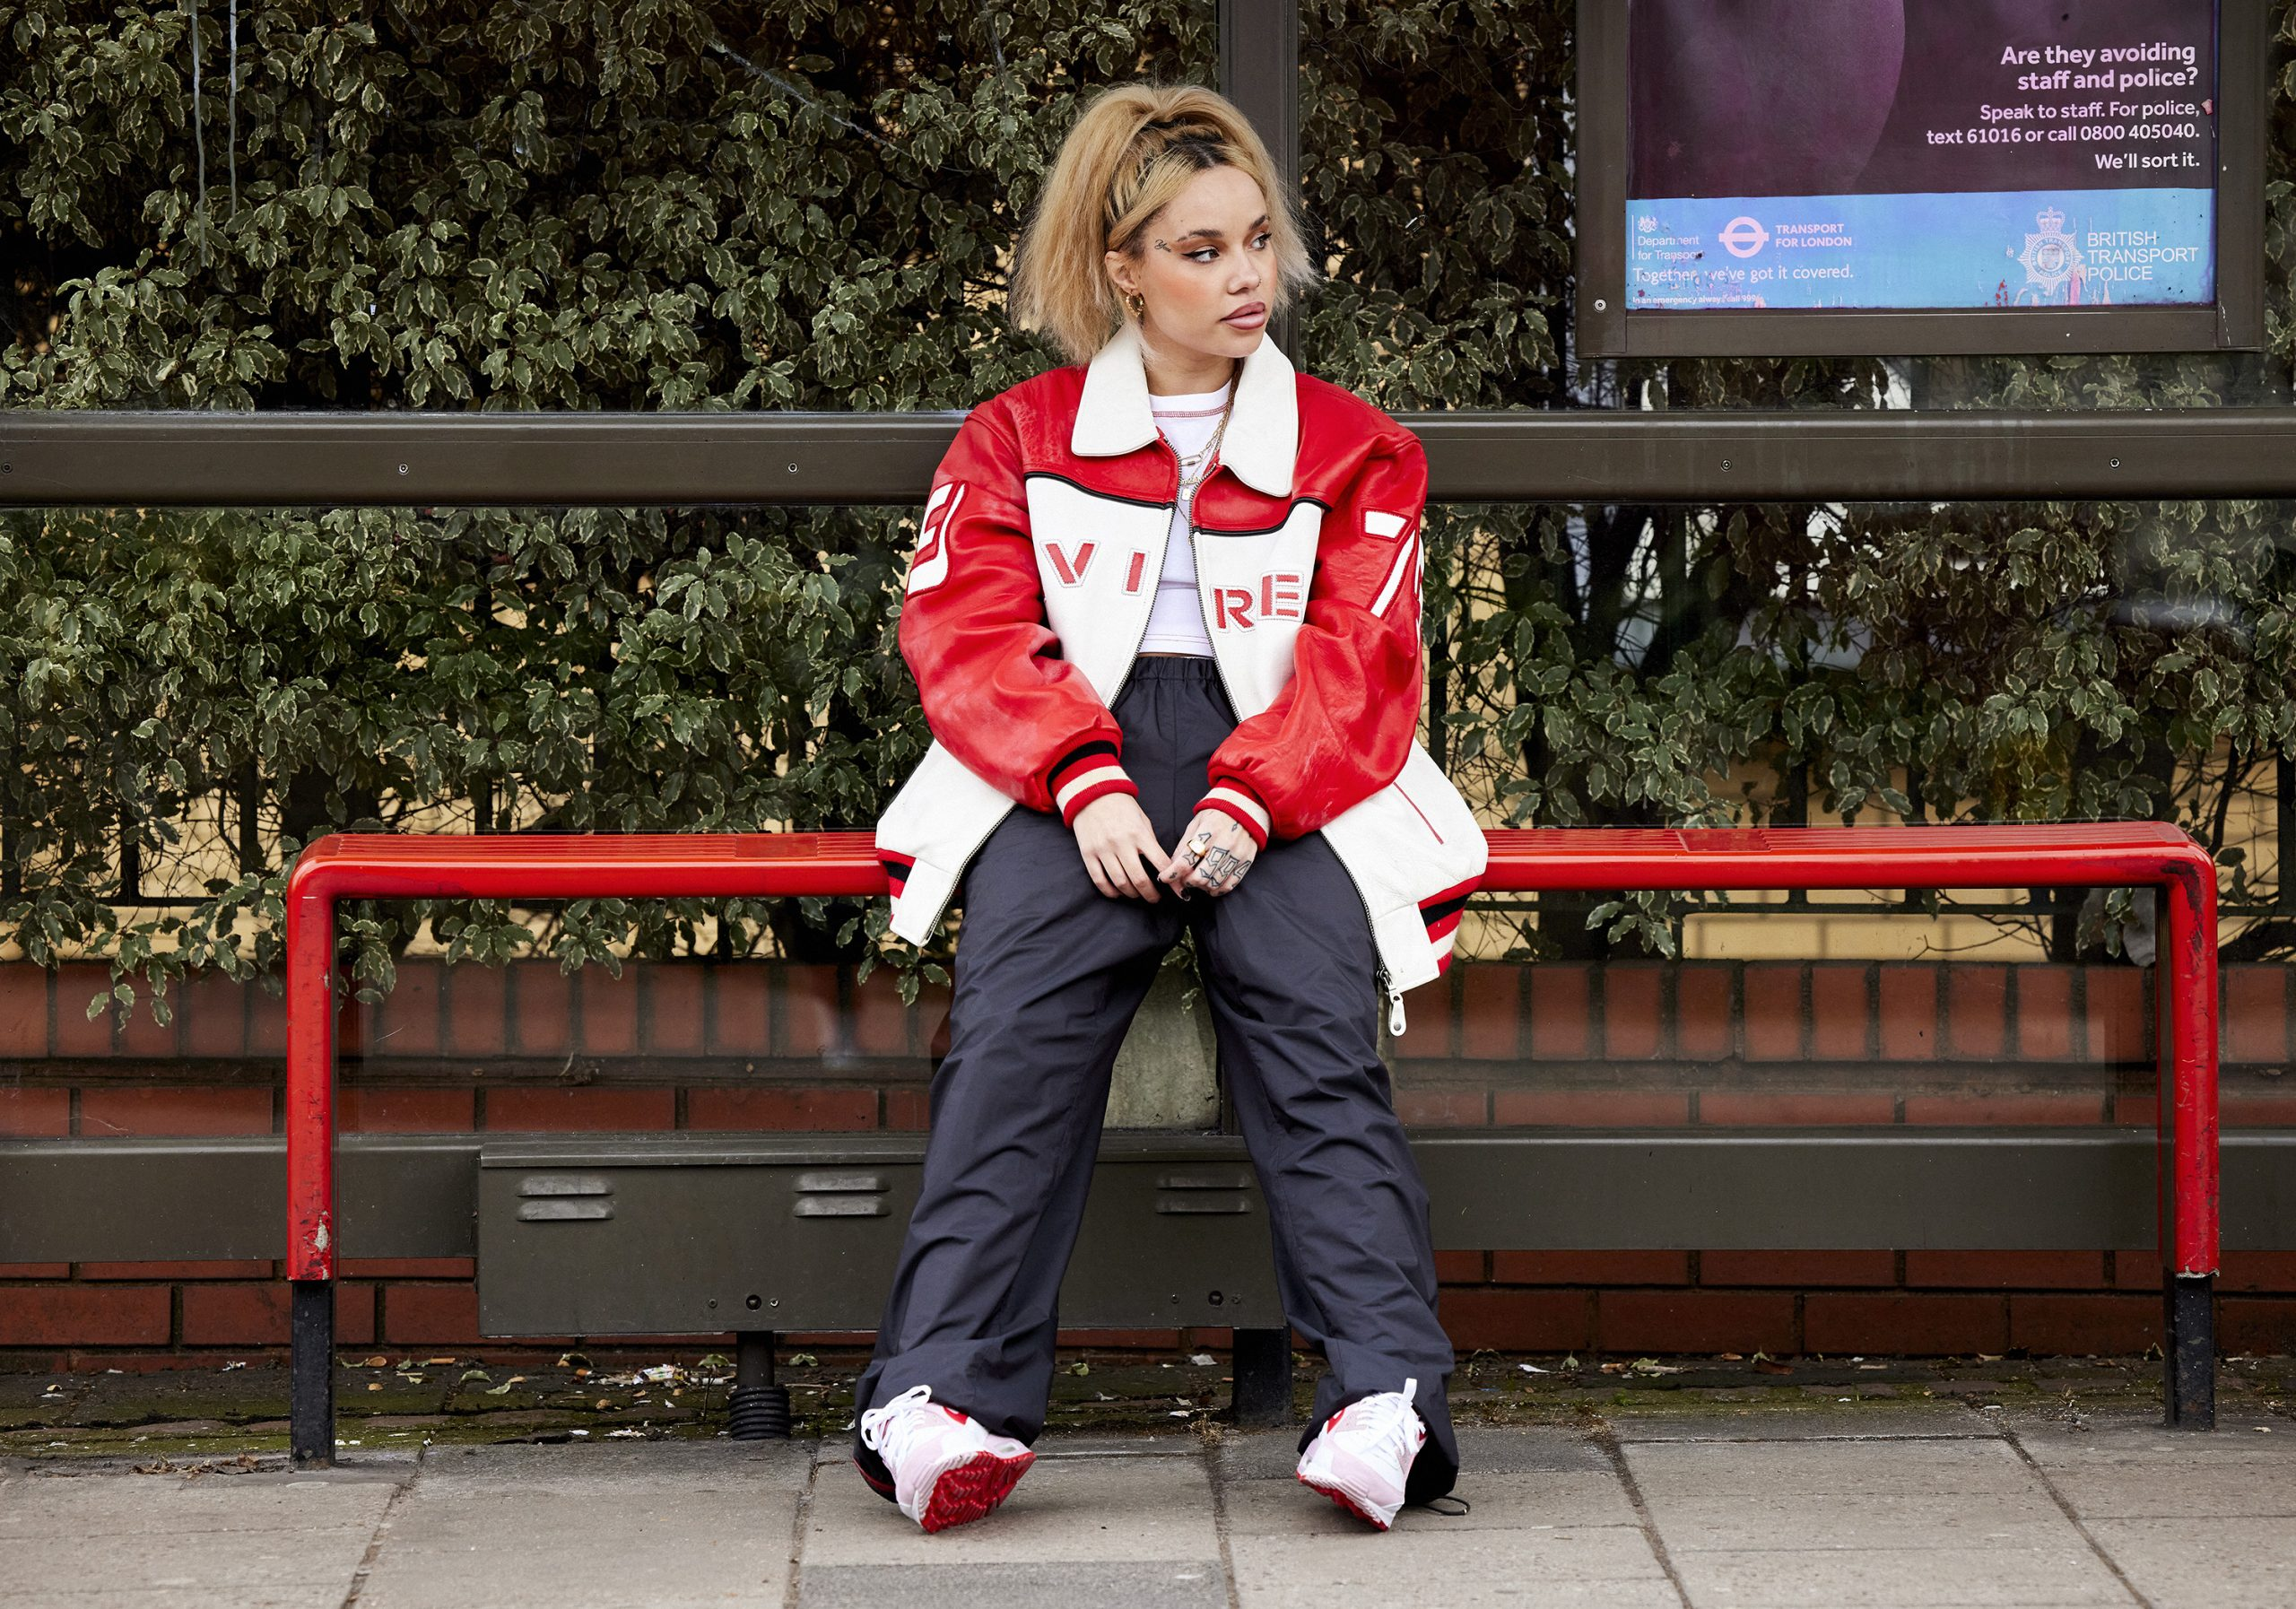 JGRREY sitting at a bus stop on a red bench